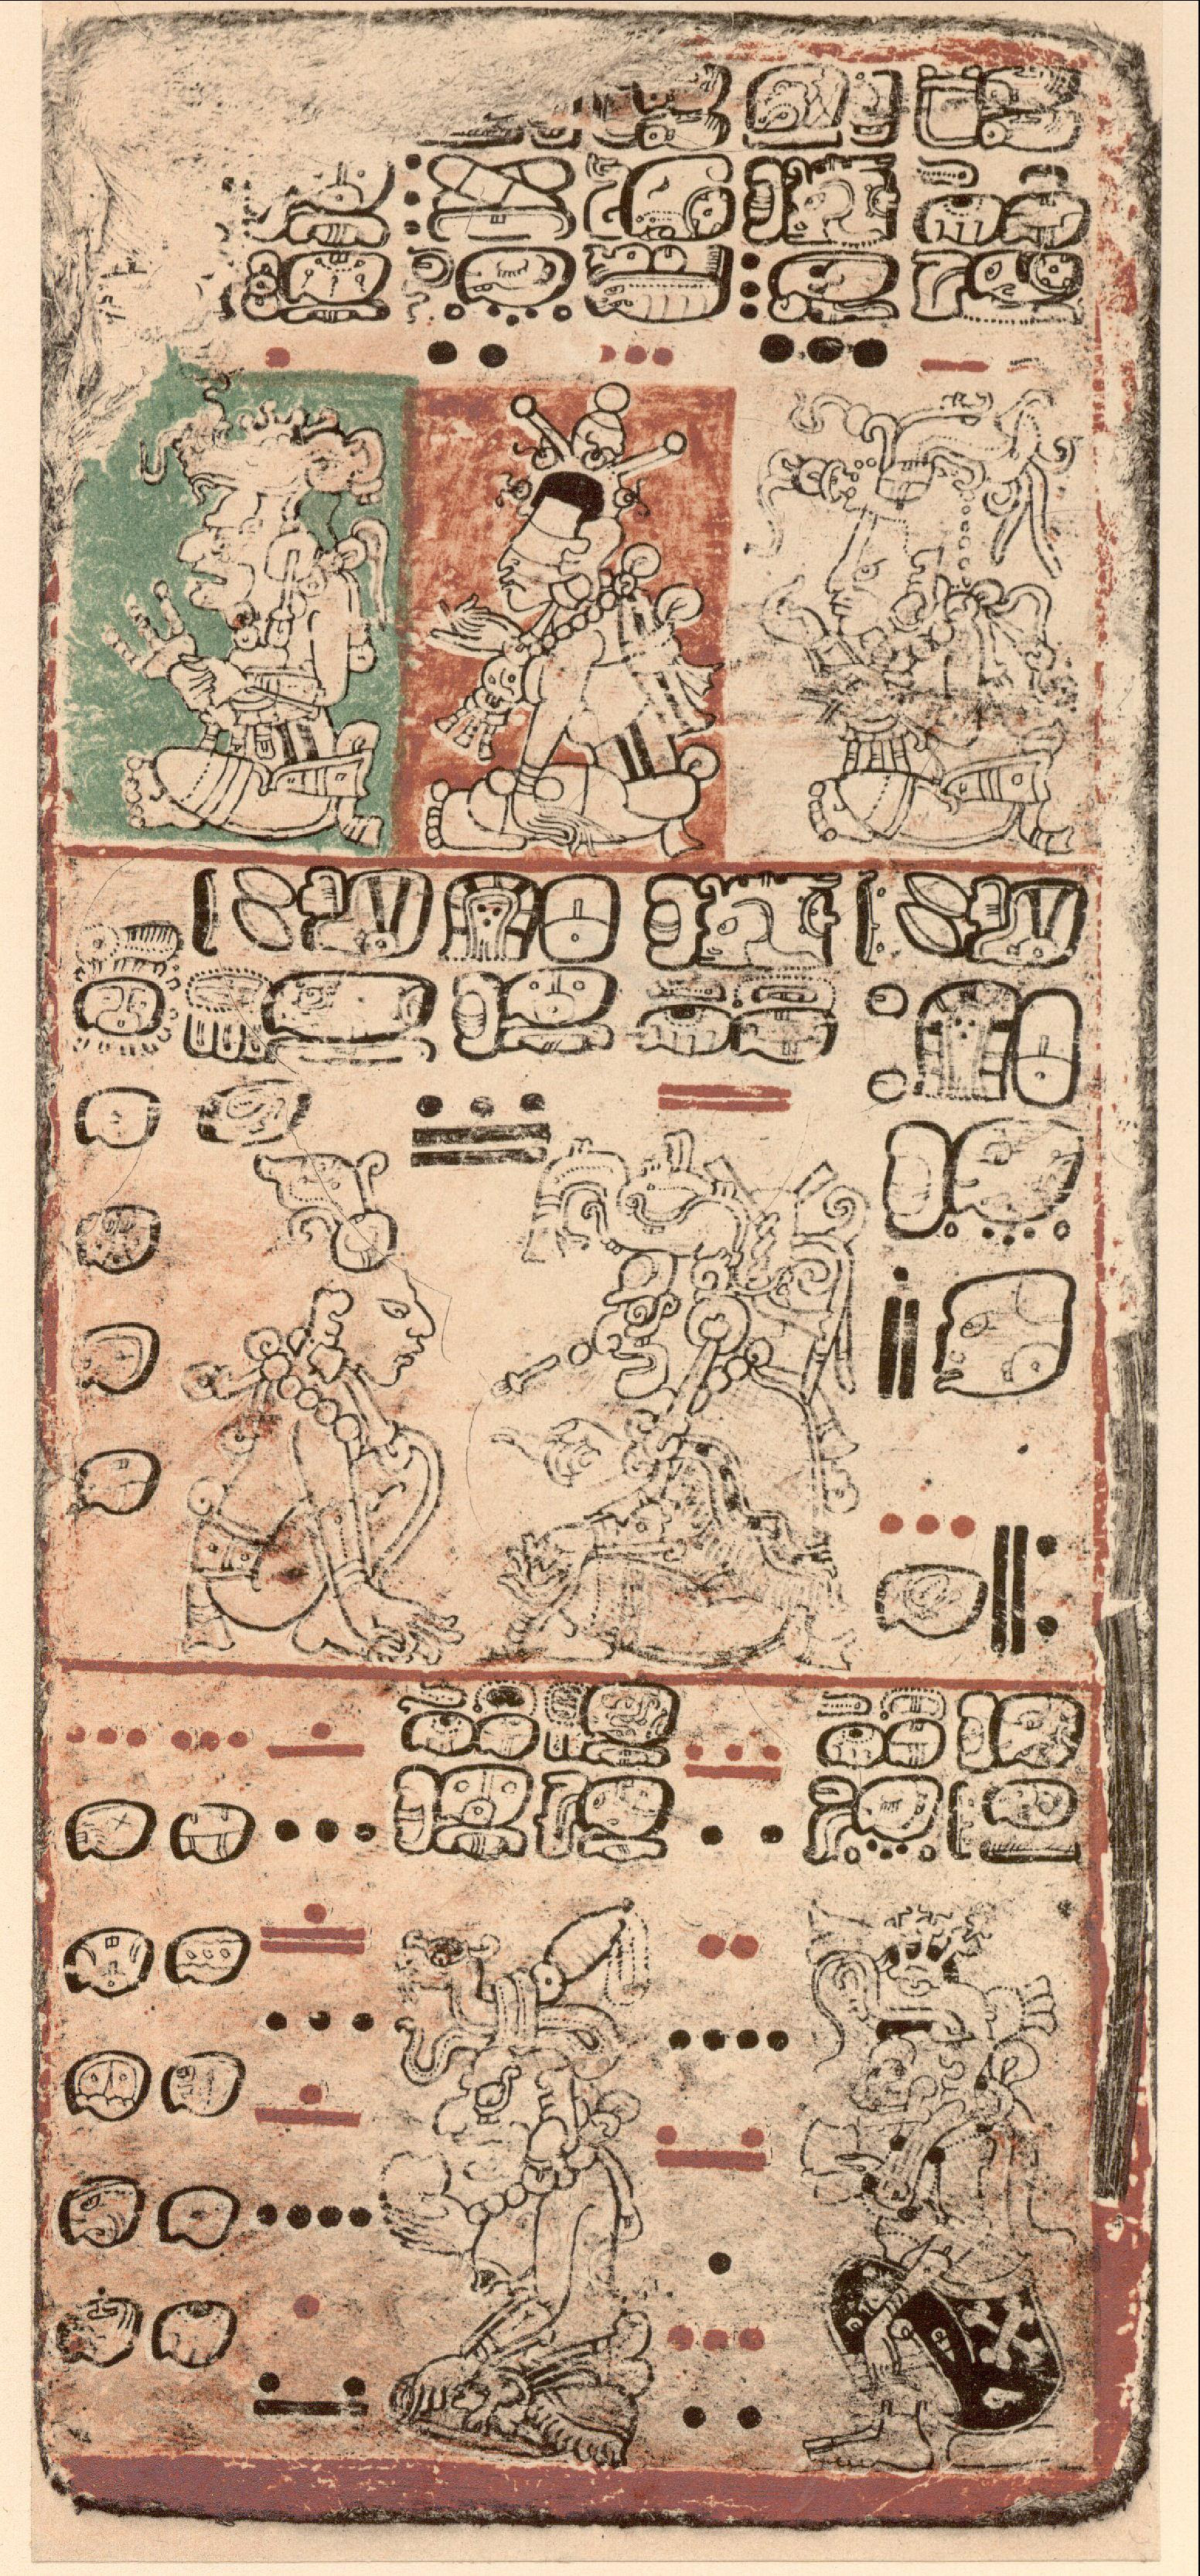 http://upload.wikimedia.org/wikipedia/commons/8/85/Dresden_Codex_p09.jpg